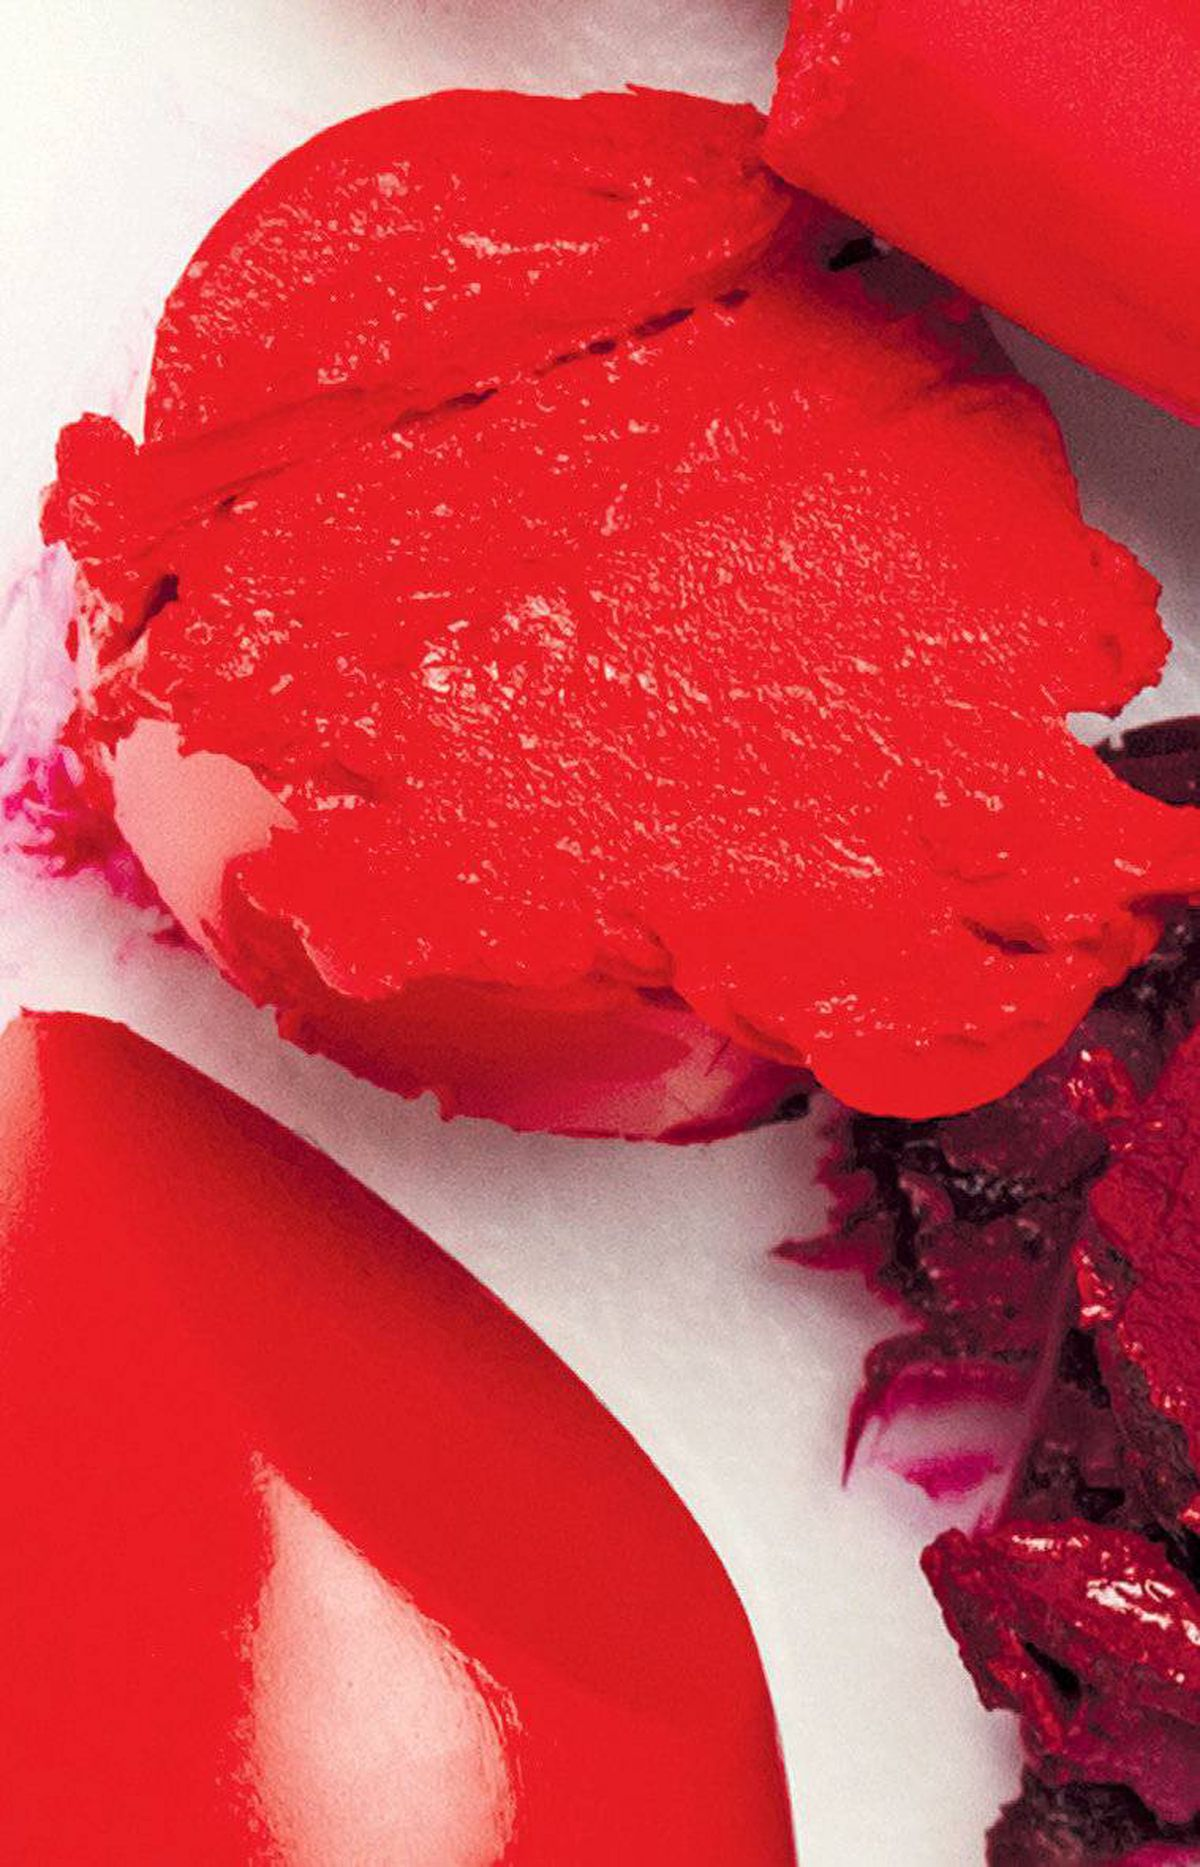 M.A.C. Matte lipstick in Russian Red, $17.50 at M.A.C. counters across Canada and through www.maccosmetics.com.